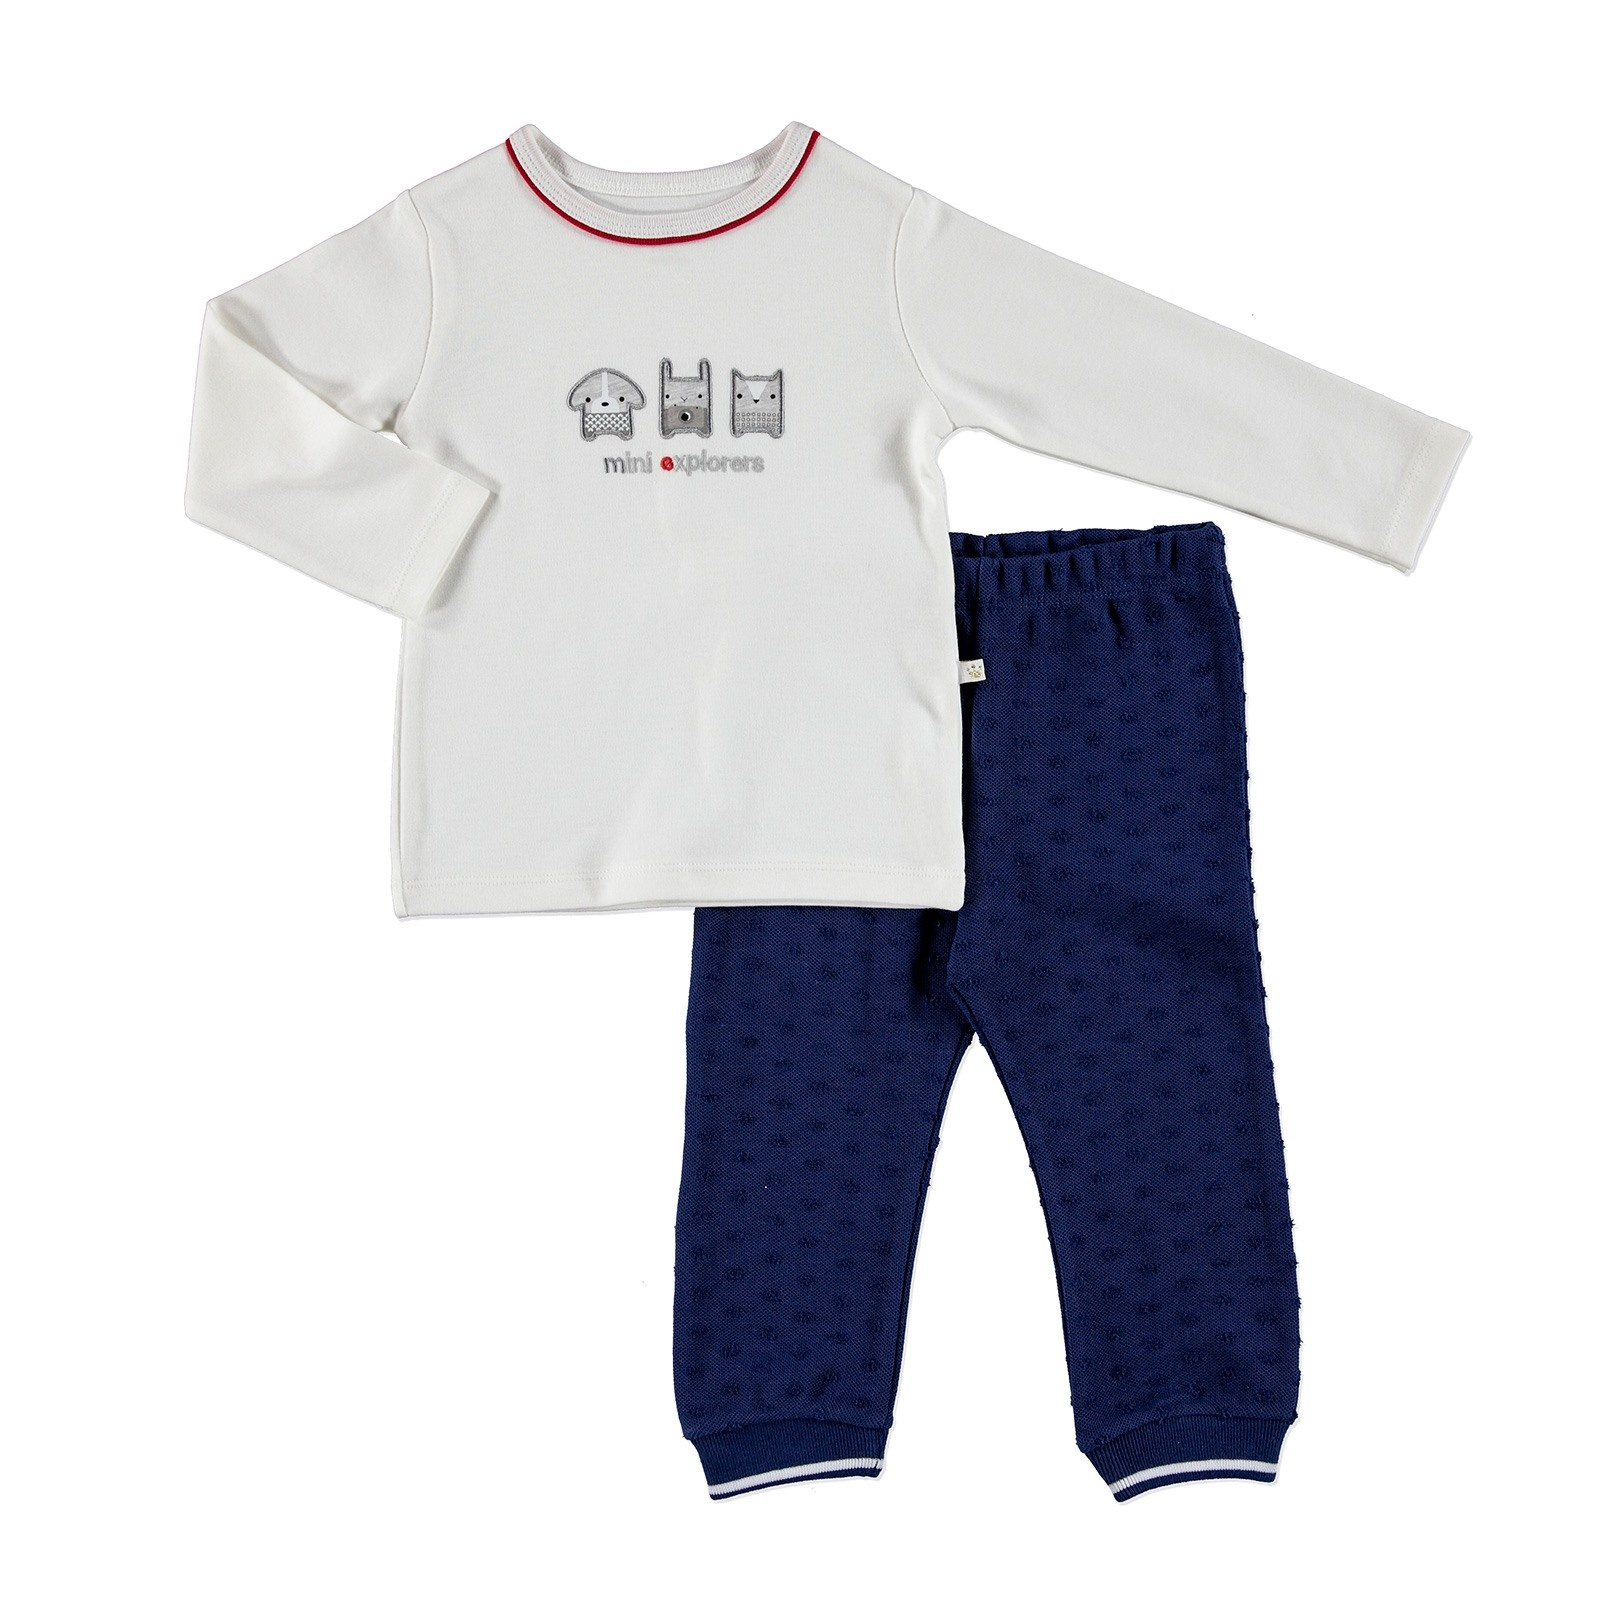 Ebebek For My Baby Mini Polo Neck Sweatshirt Trousers 2 Pcs Set